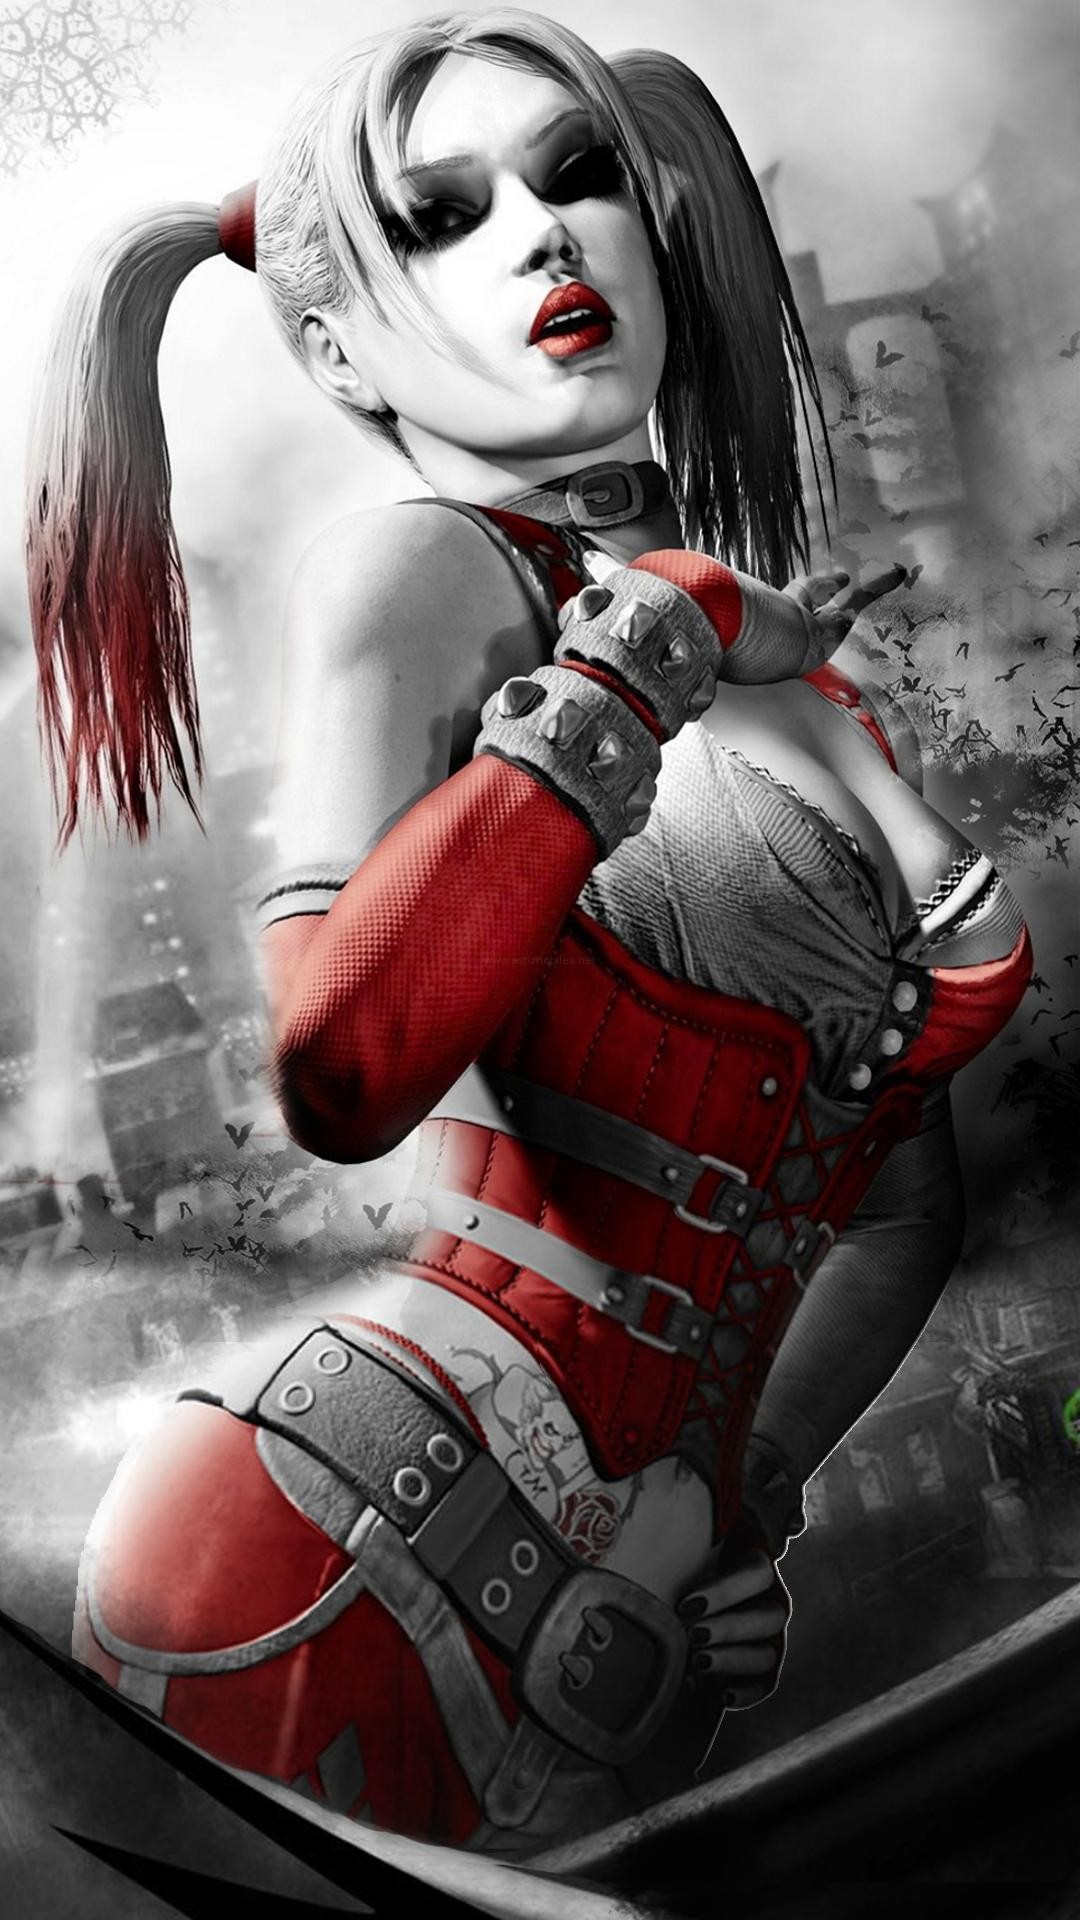 Harley Quinn Wallpaper For Iphone N930oO03k